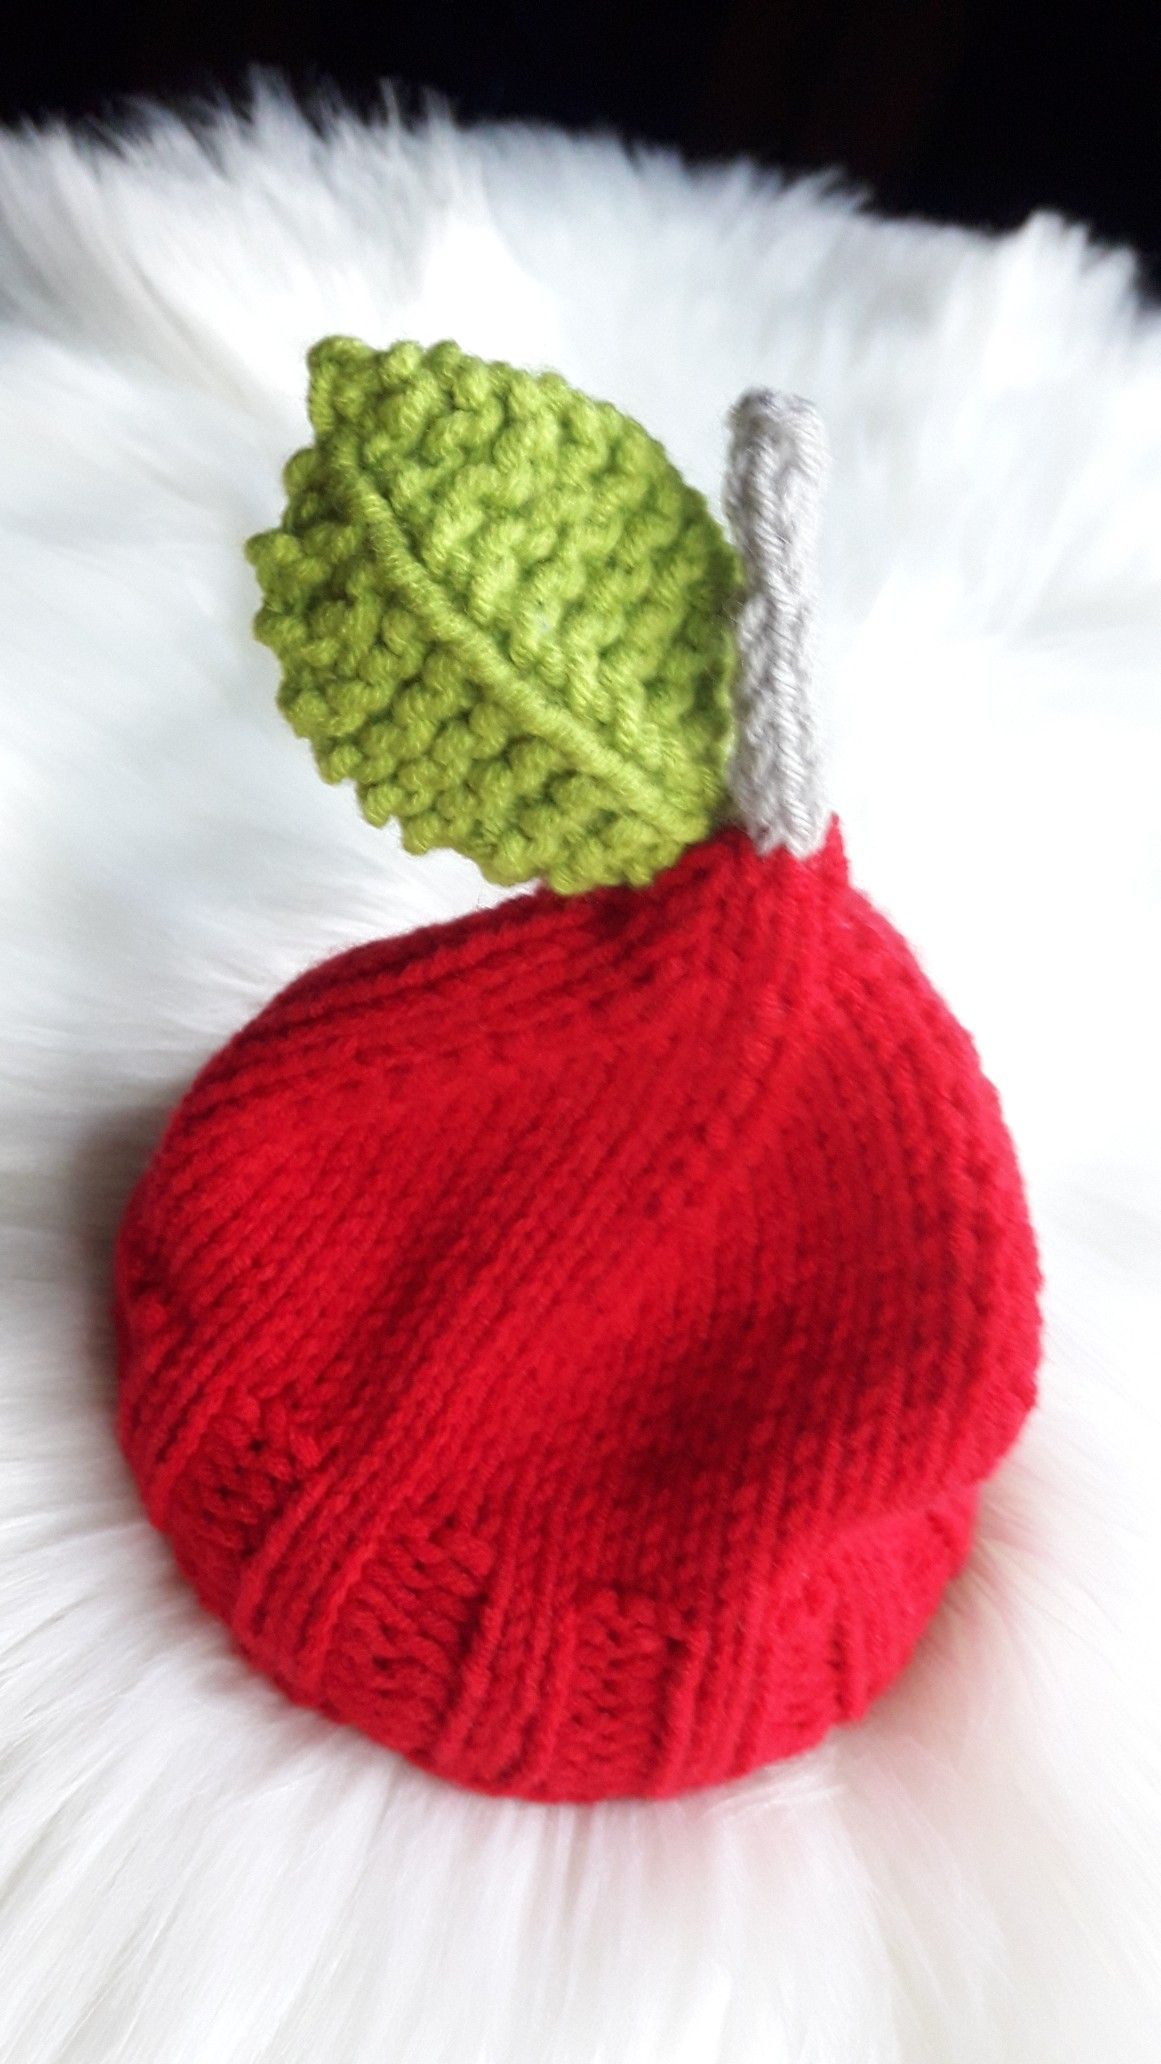 Knitting Apple Hat | Knitting, Knitted hats, Apple hat